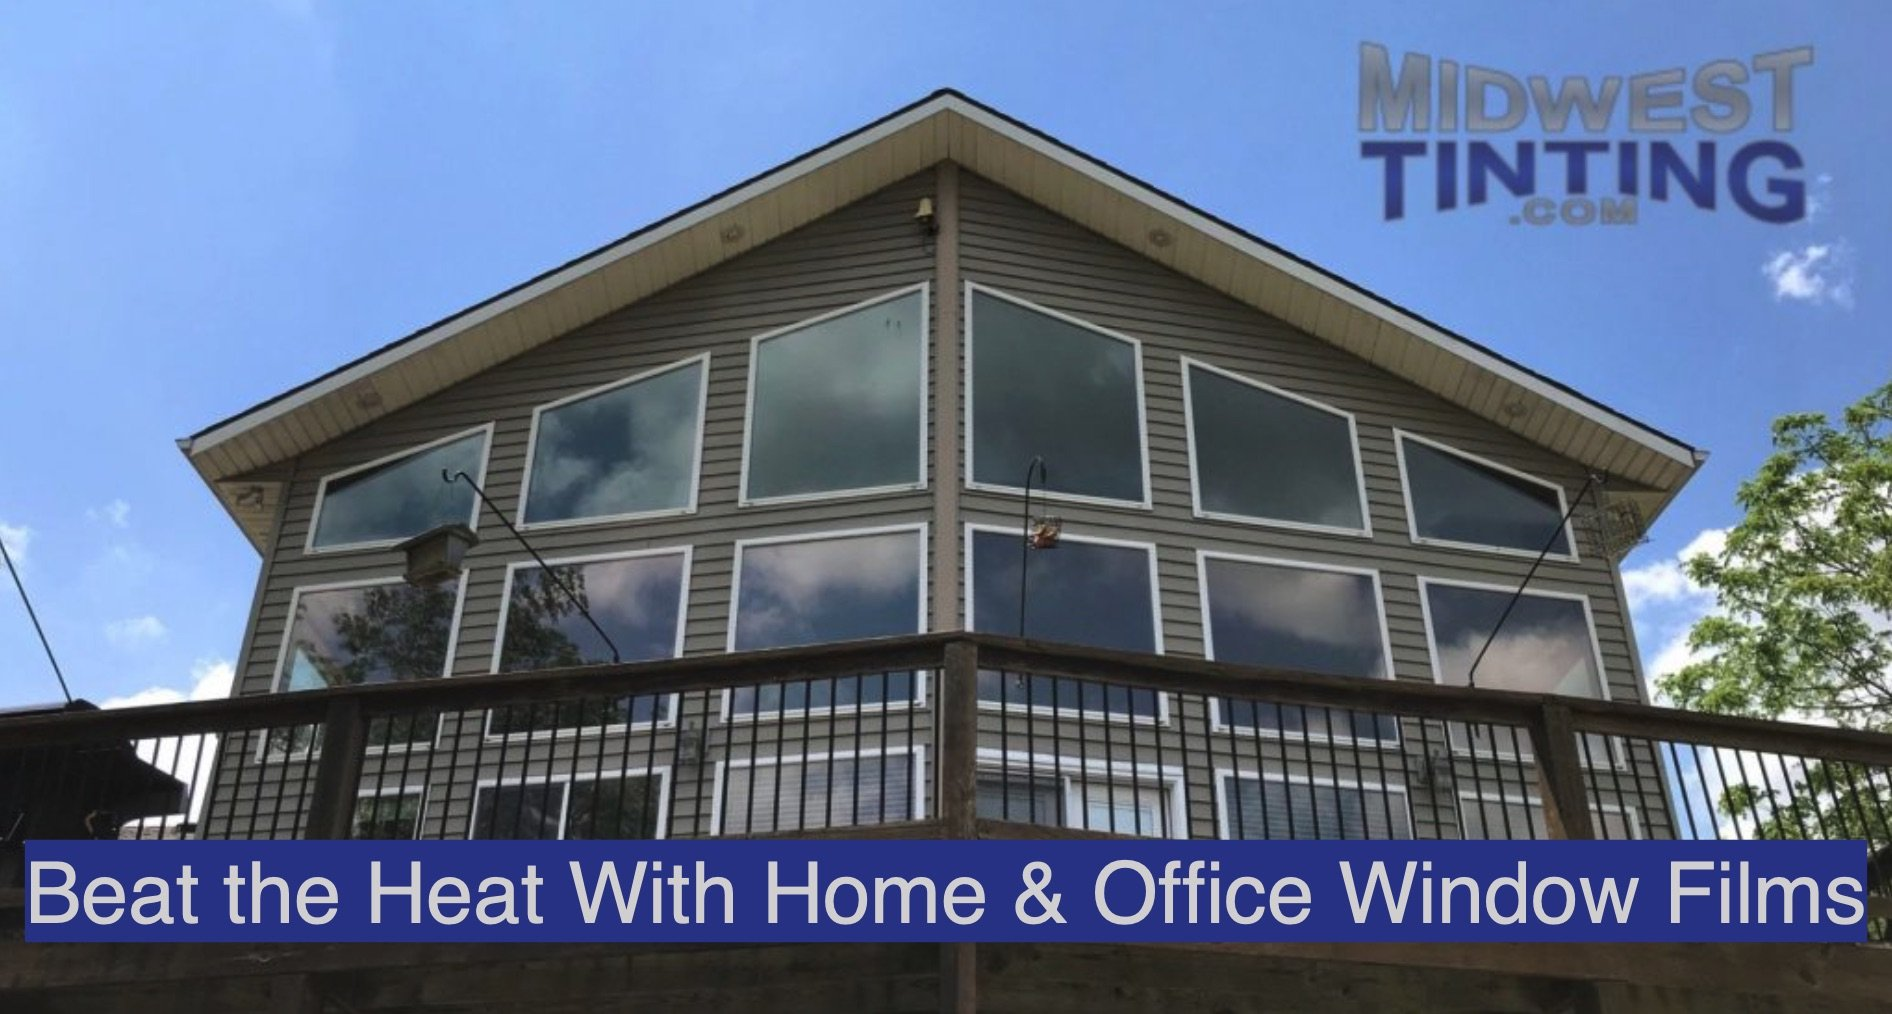 Beat the Heat With Home and Office Window Films in Kansas City 2 - Home and Commercial Window Films in Kansas City 2